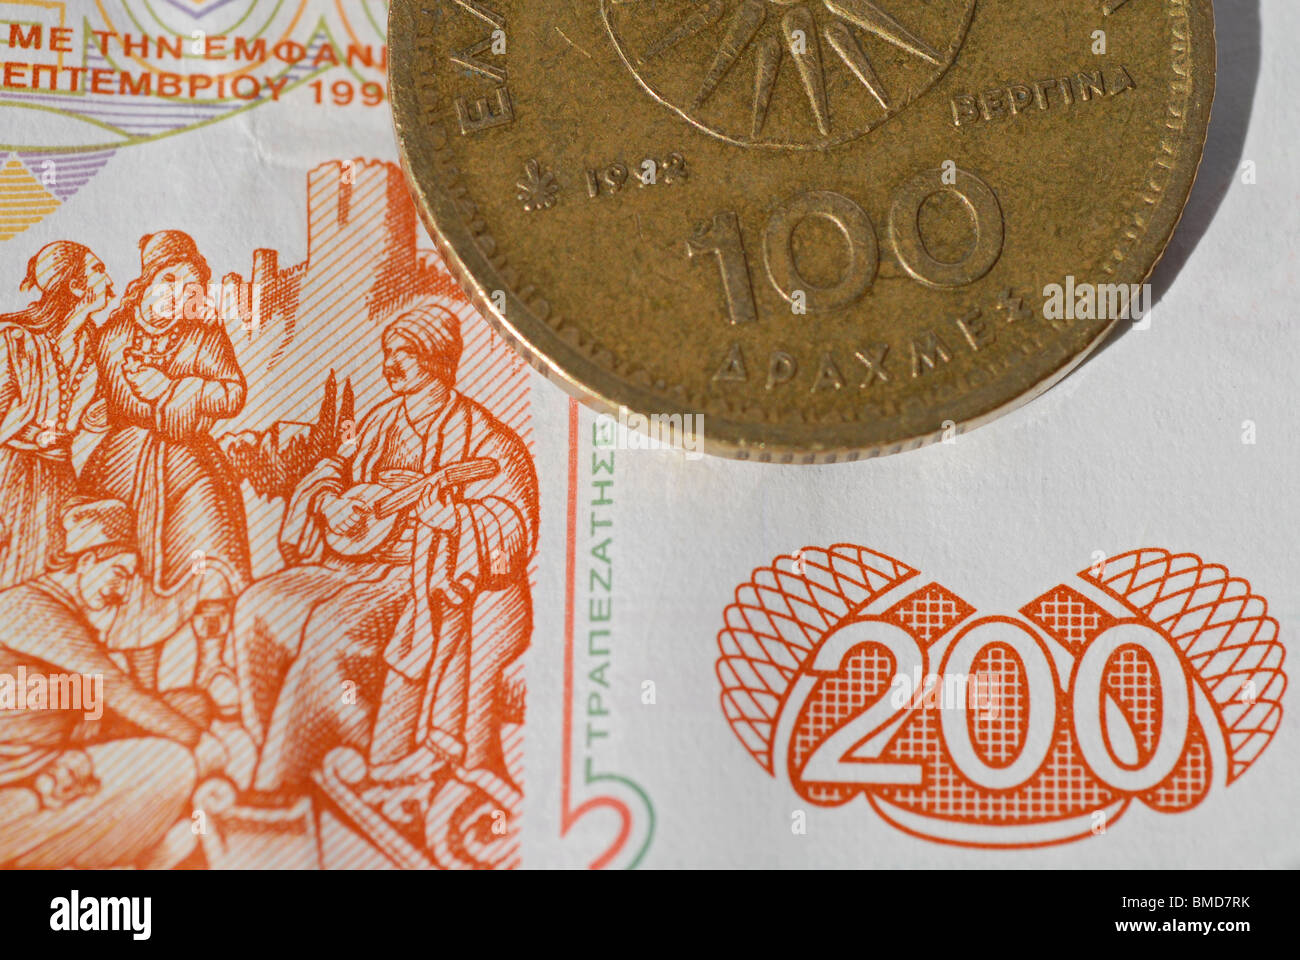 Old Greece Money (Drachmen) - Stock Image